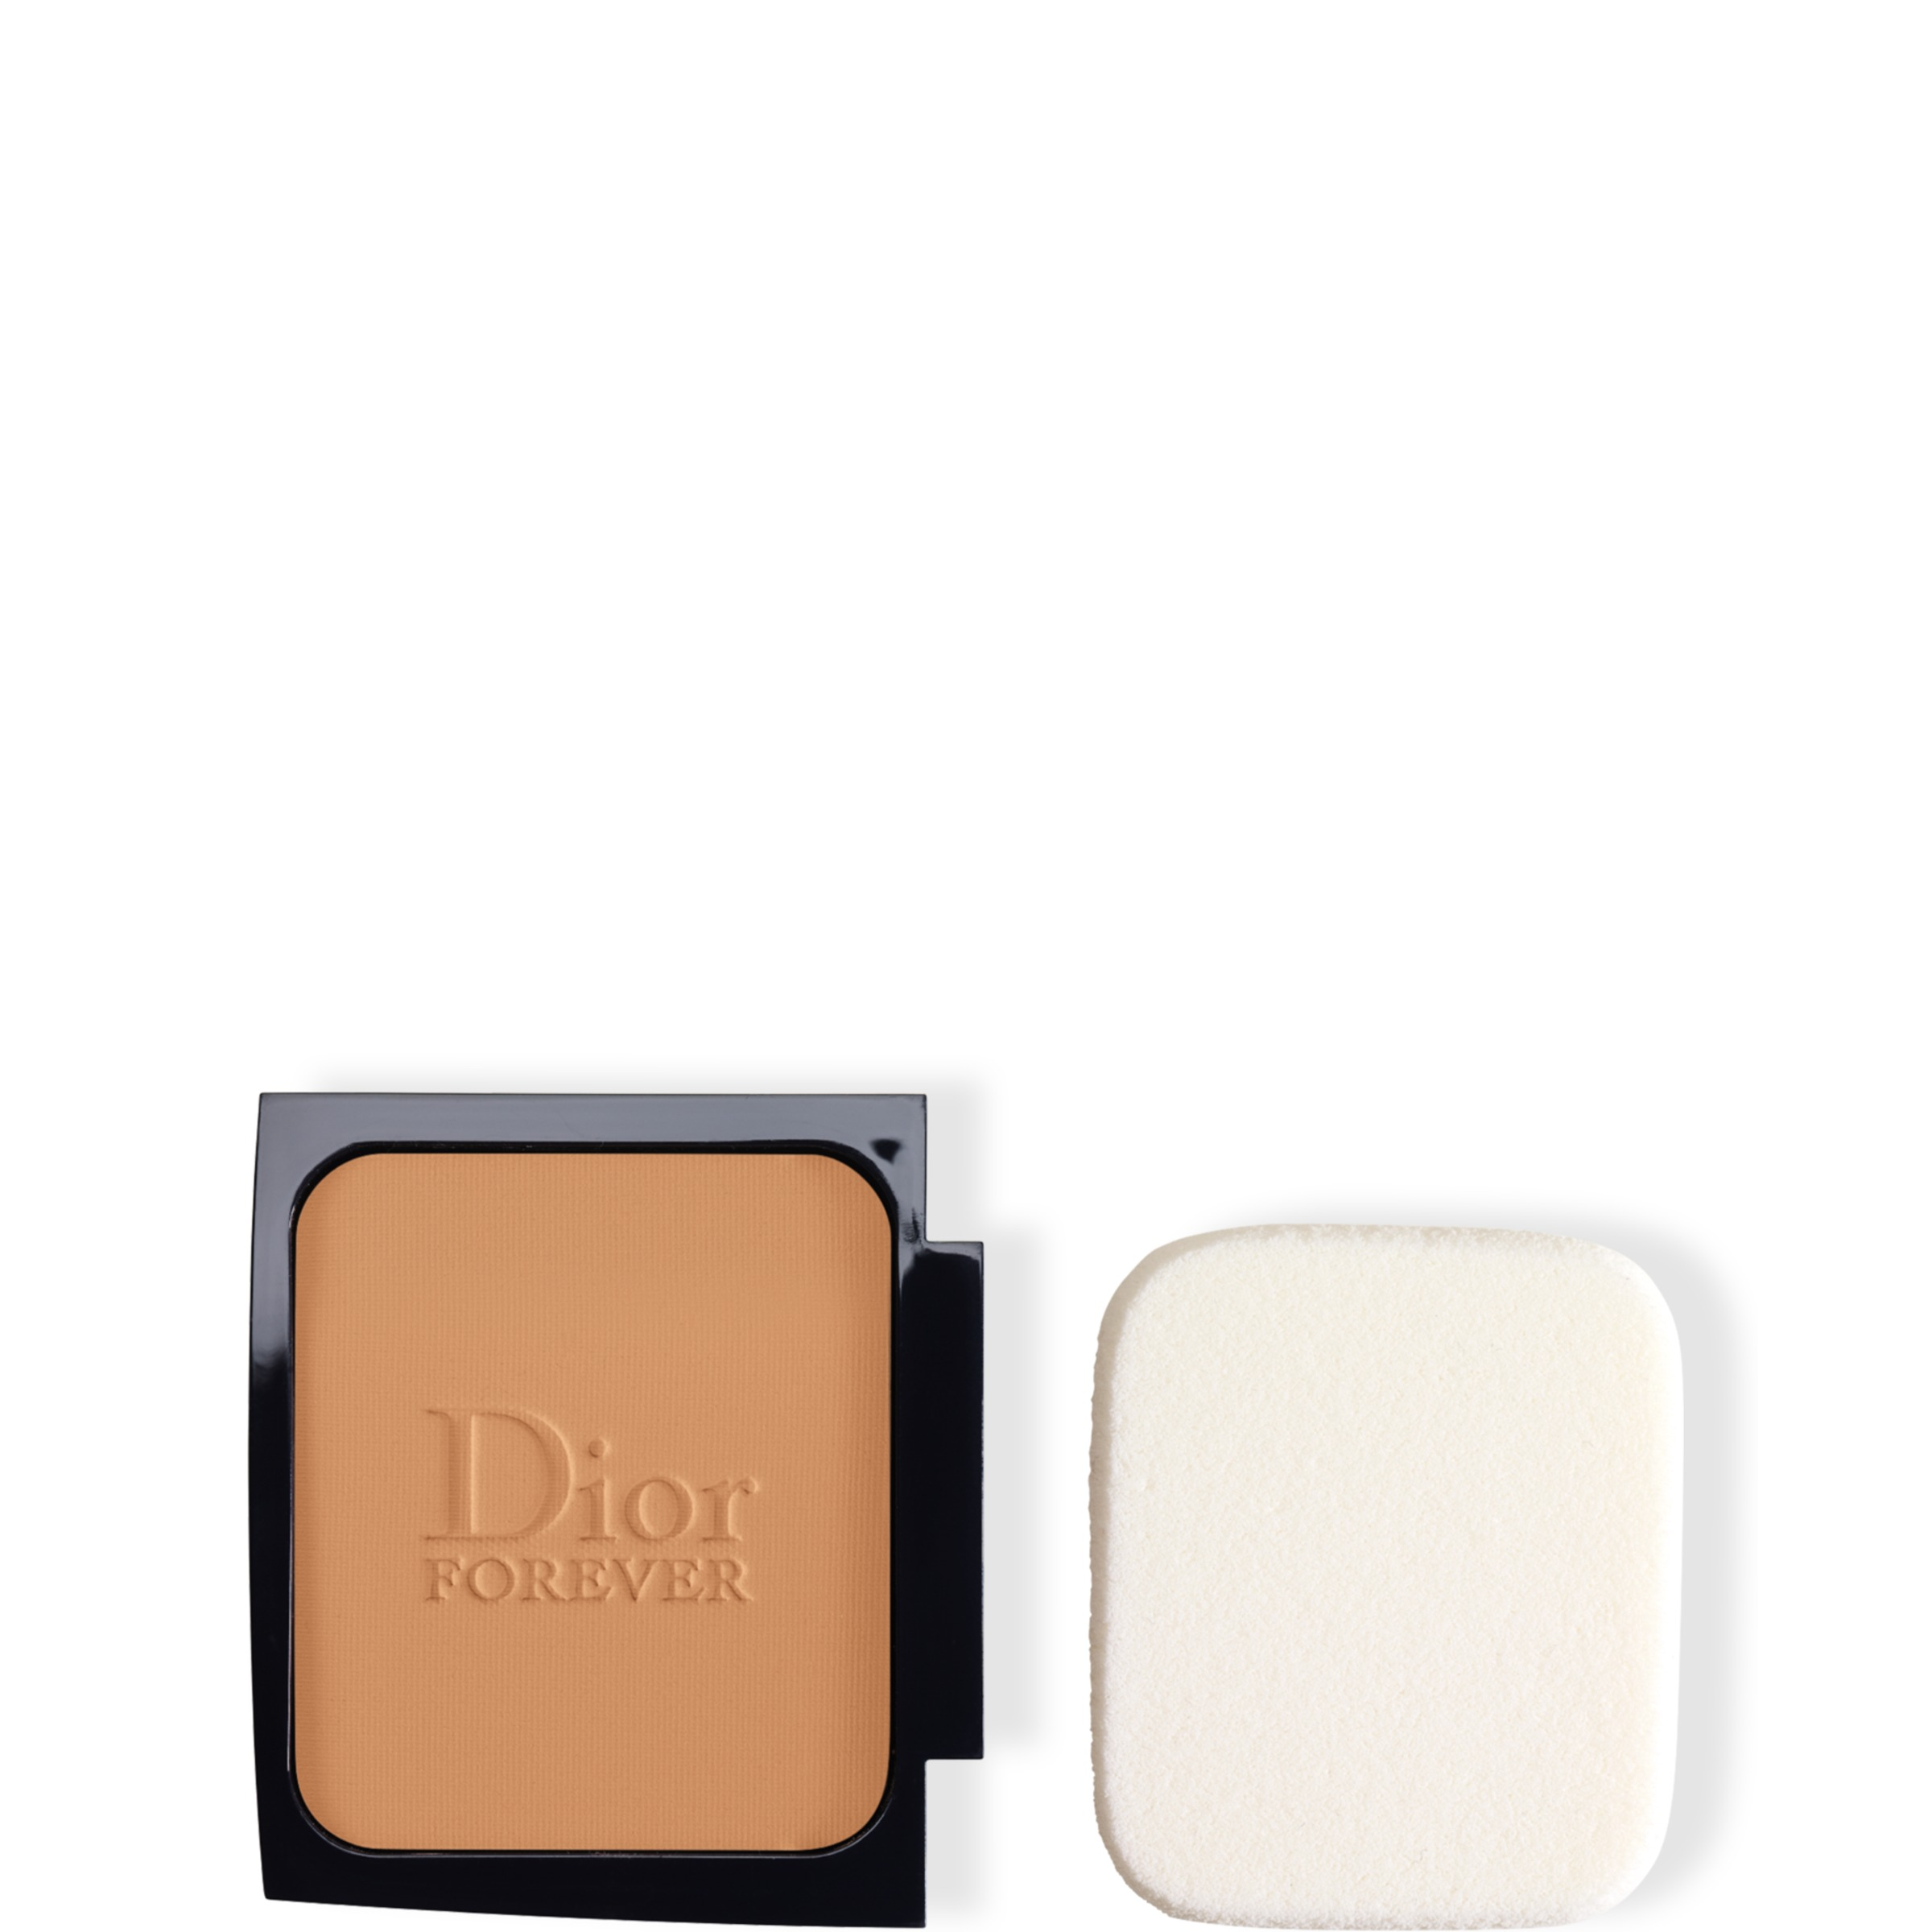 Diorskin Forever Foundation Compact Refill 040 Honey Beige